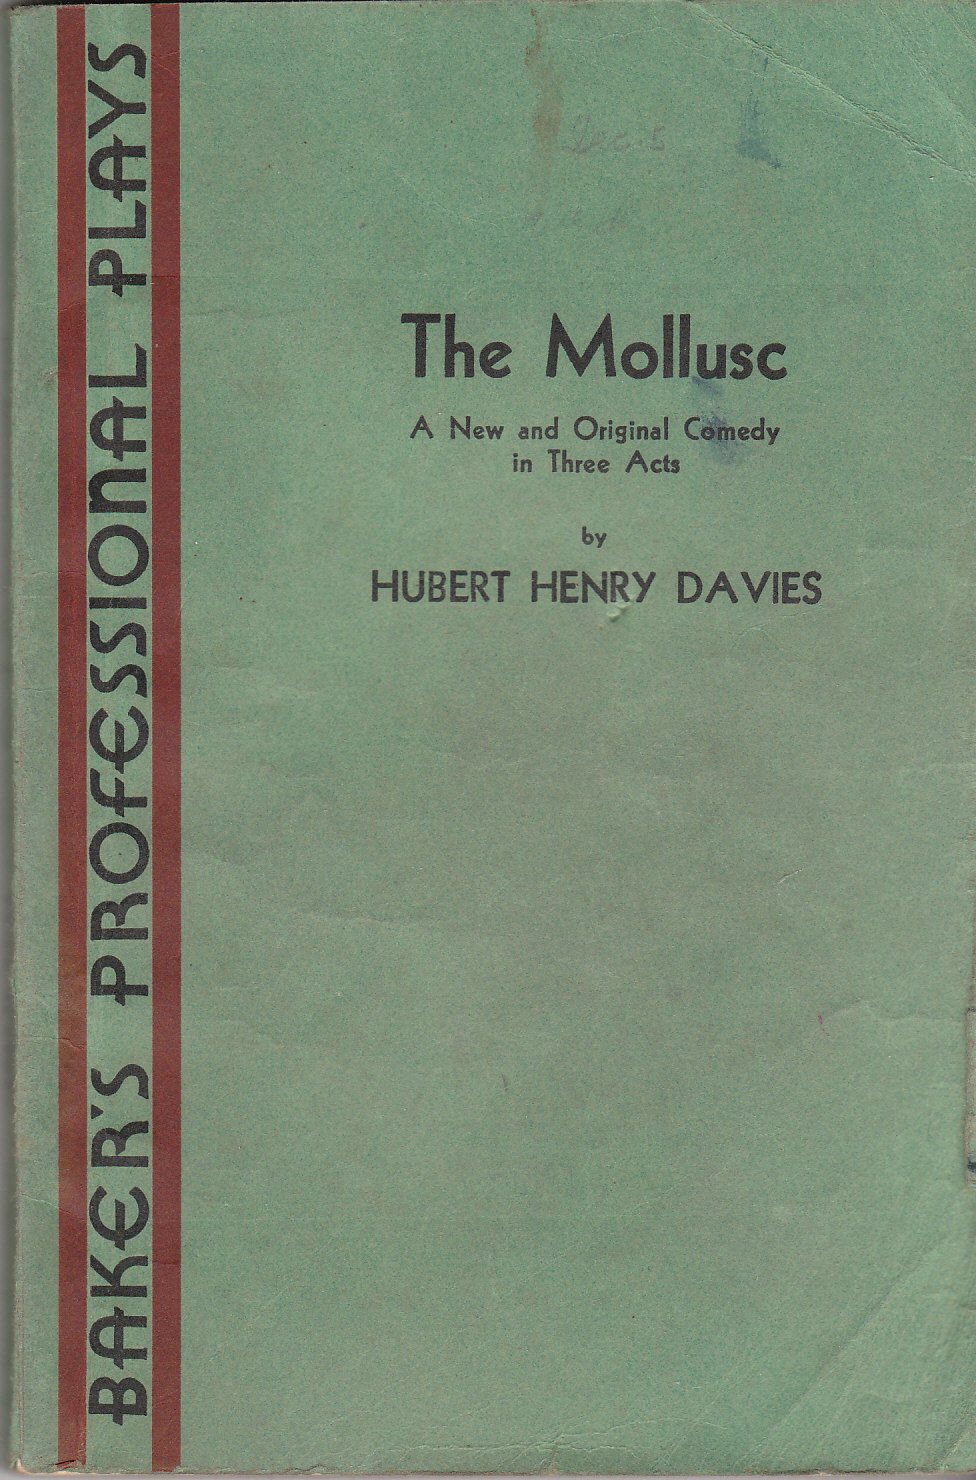 Image for The Mollusc A New and Original Comedy in Three Acts